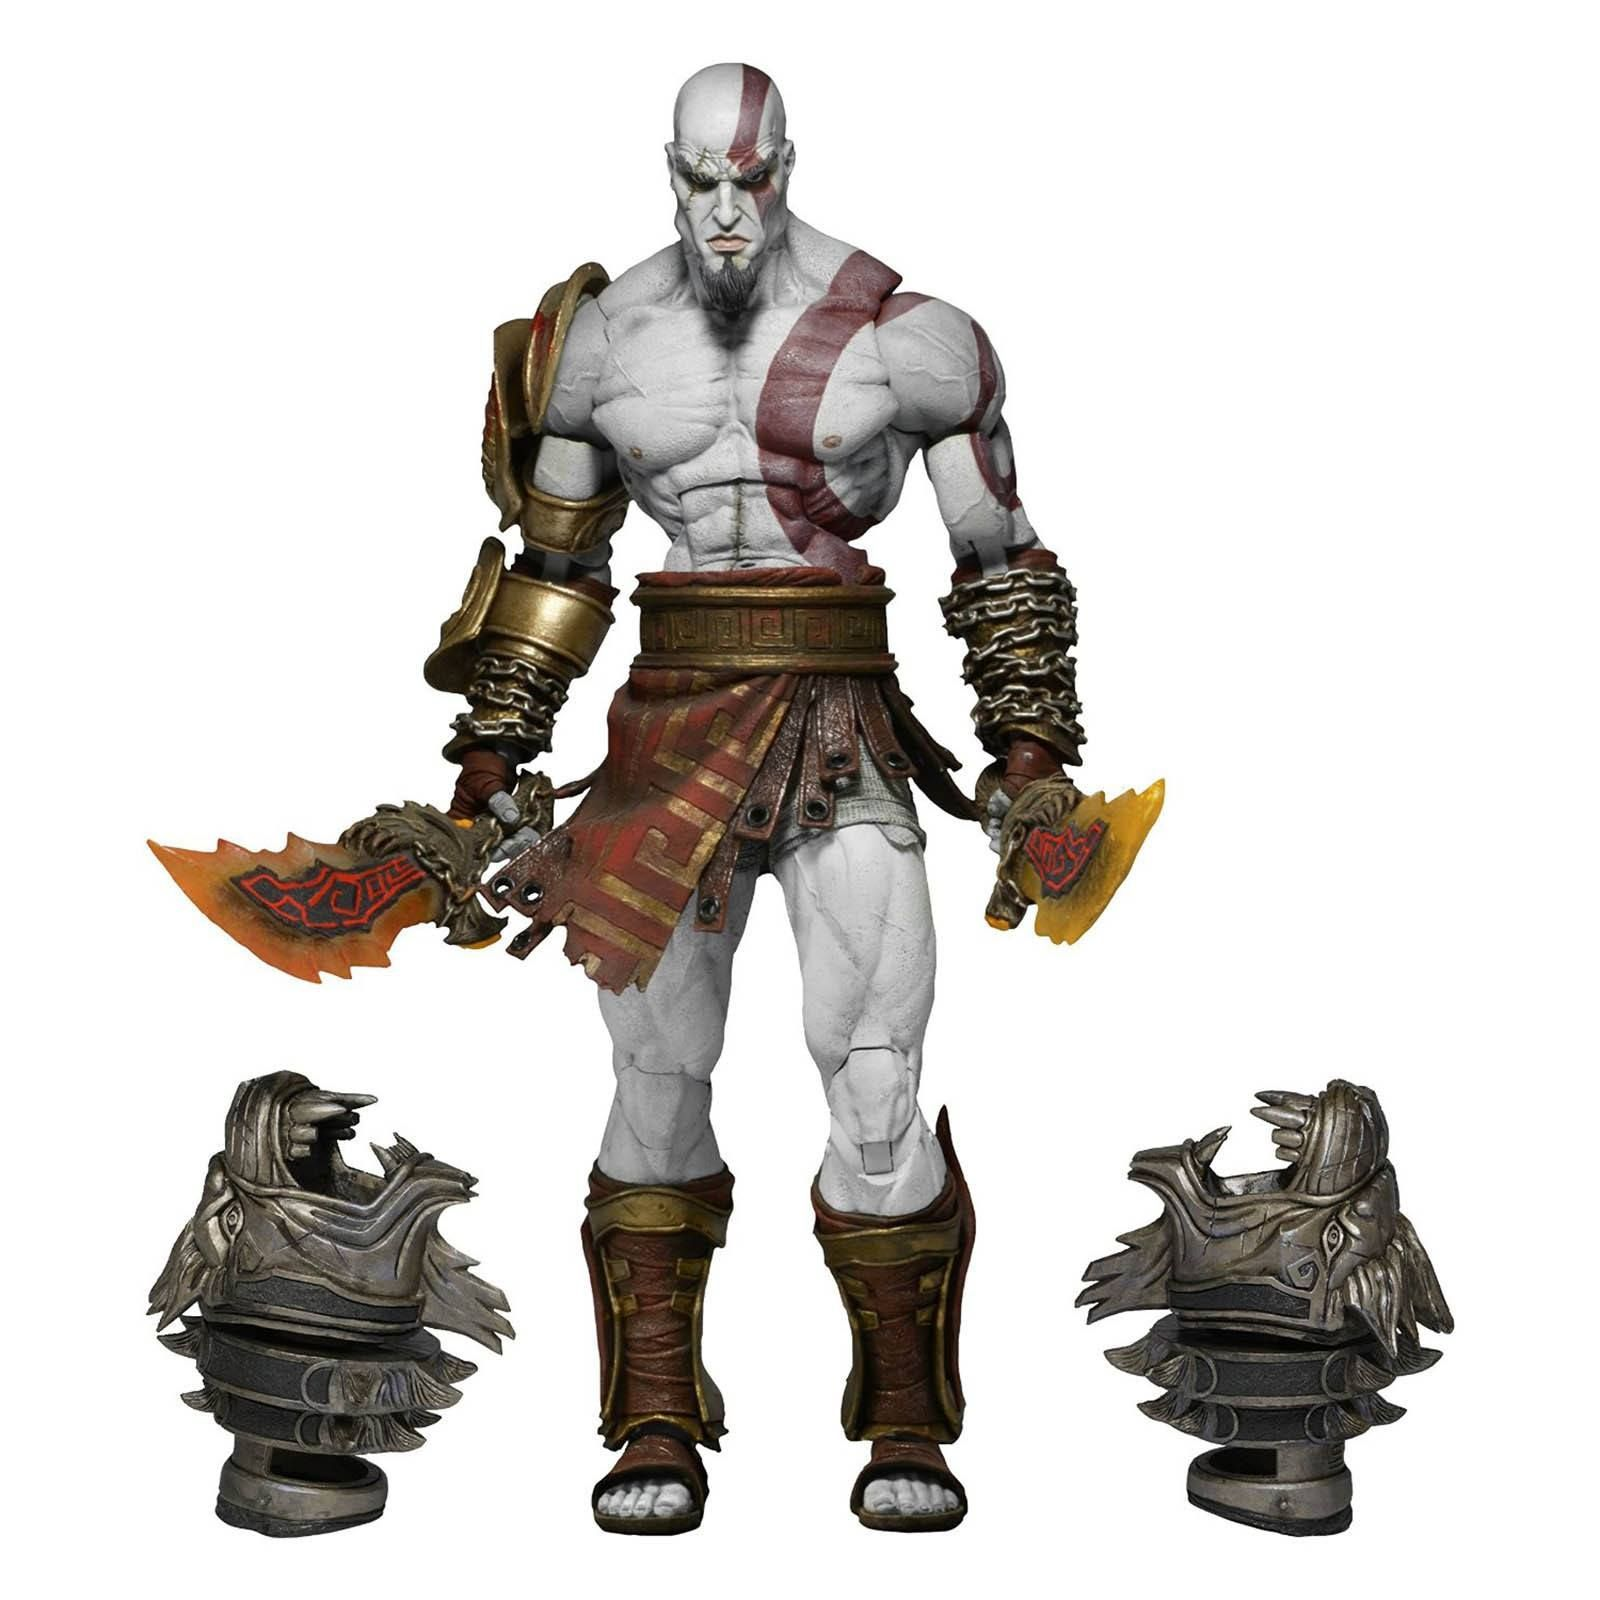 This Is A God Of War Ultimate Kratos Ghost Of Sparta Action Figure